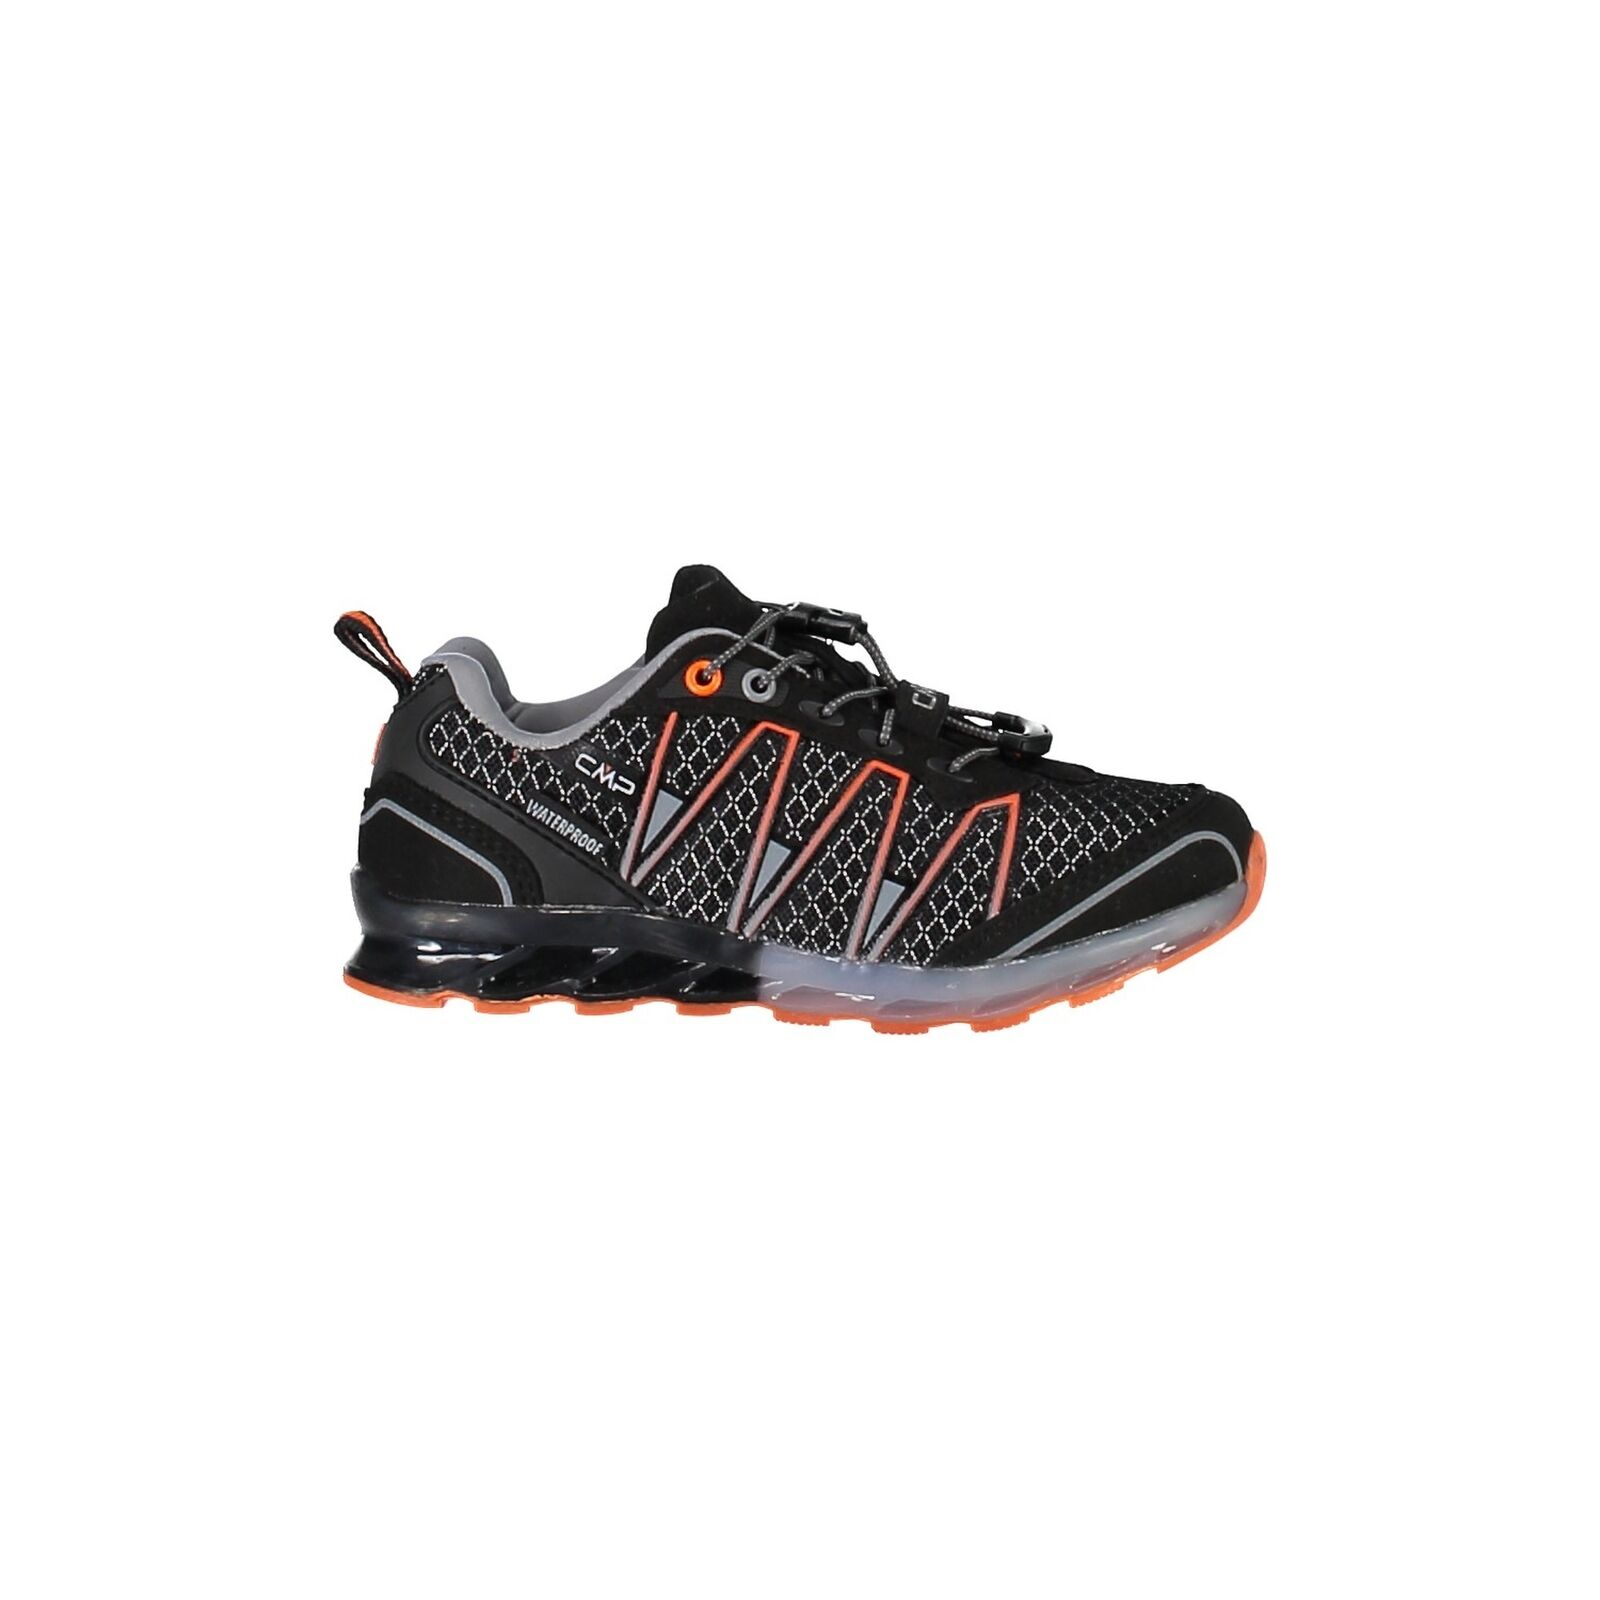 CMP shoes  da Corsa Sport Bambini Altak Trail shoes Wp black Pianura  with 60% off discount